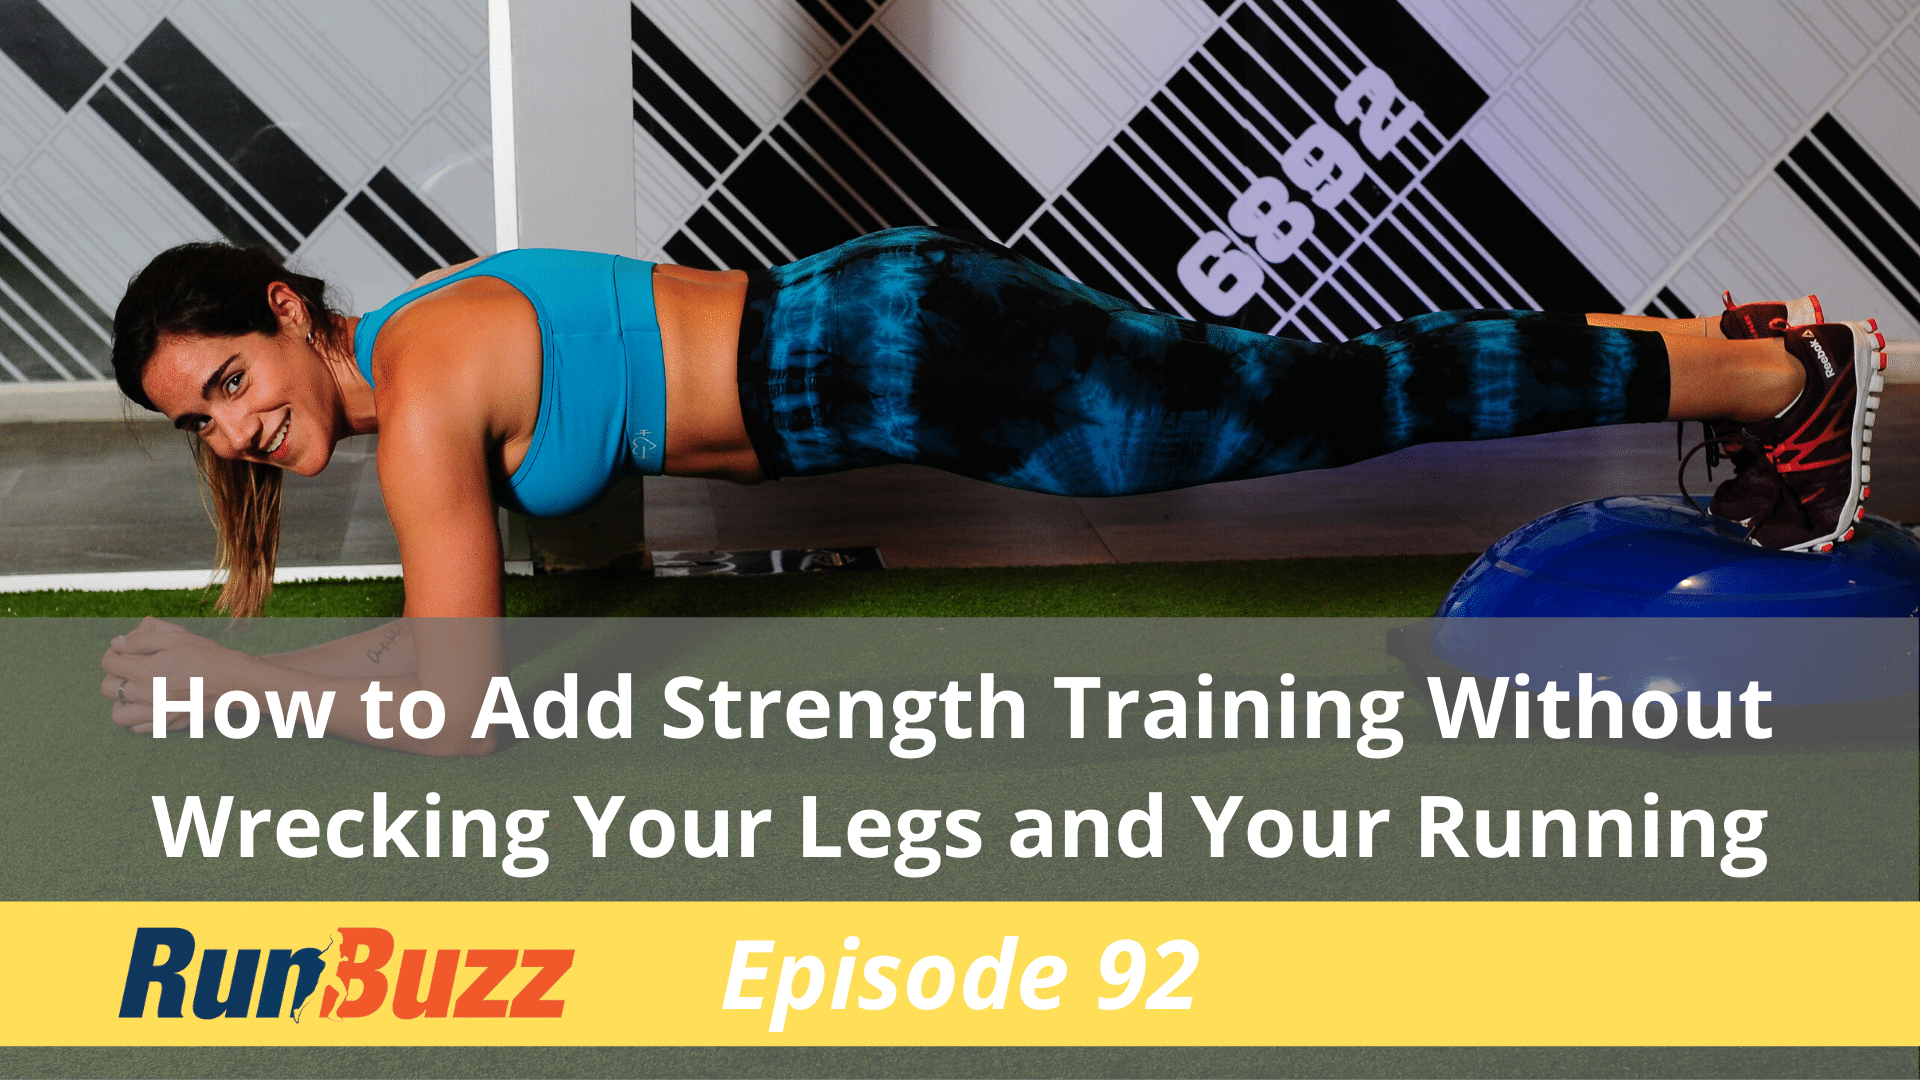 How-To-Add-Strength-Training-Without-Wrecking-Your-Legs-And-Your-Running